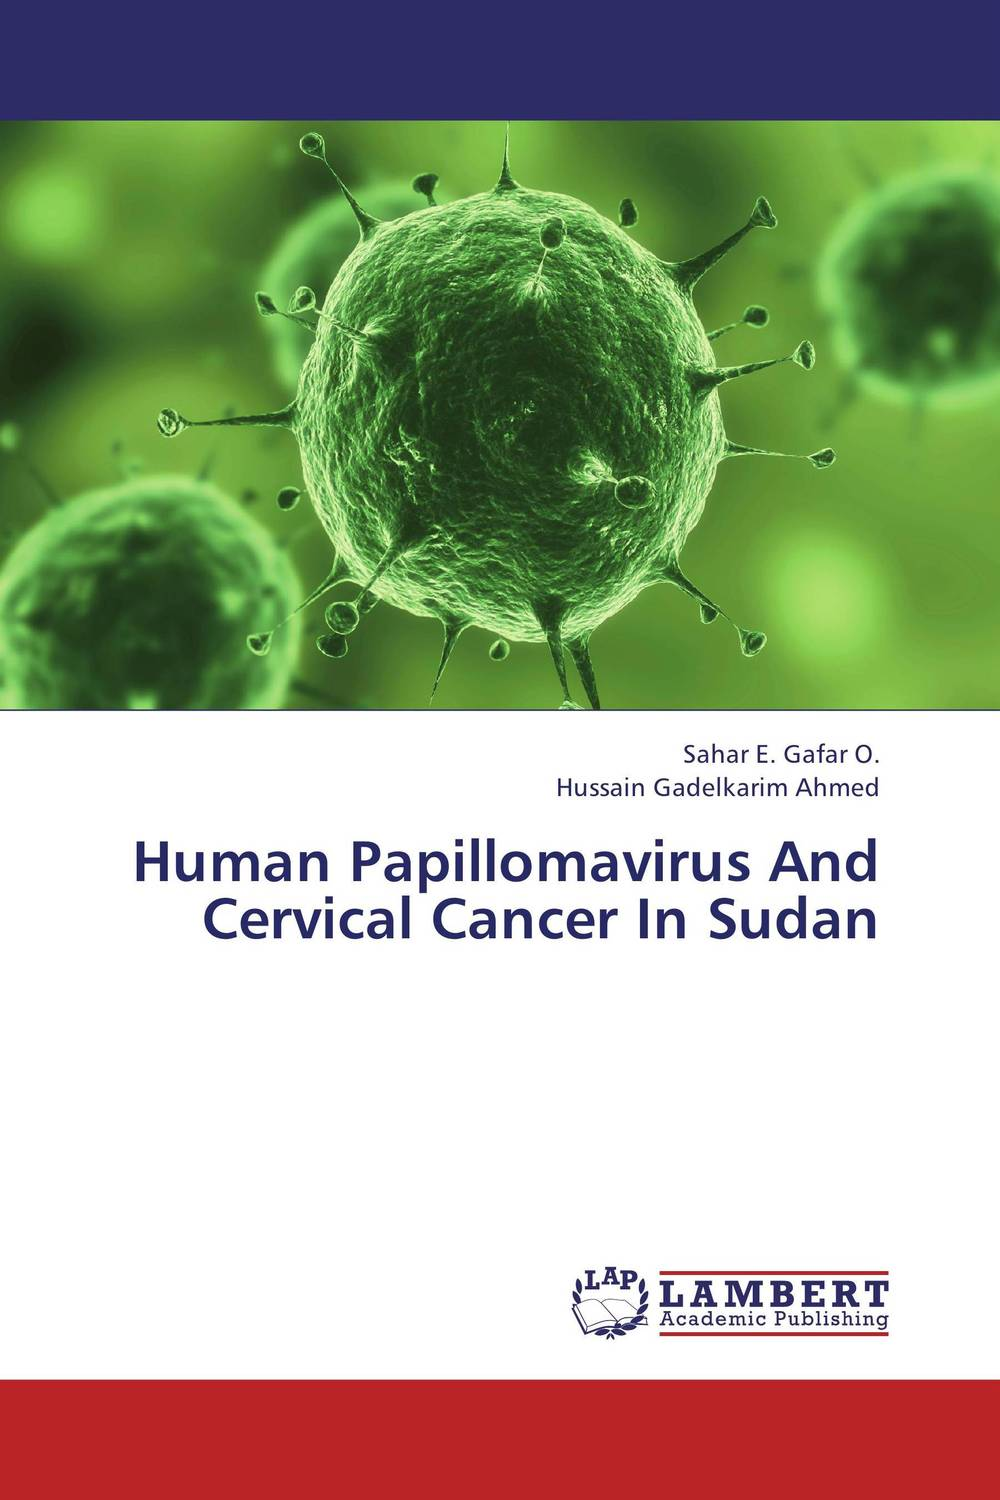 Human Papillomavirus And Cervical Cancer In Sudan high risk human papillomavirus and cervical carcinoma